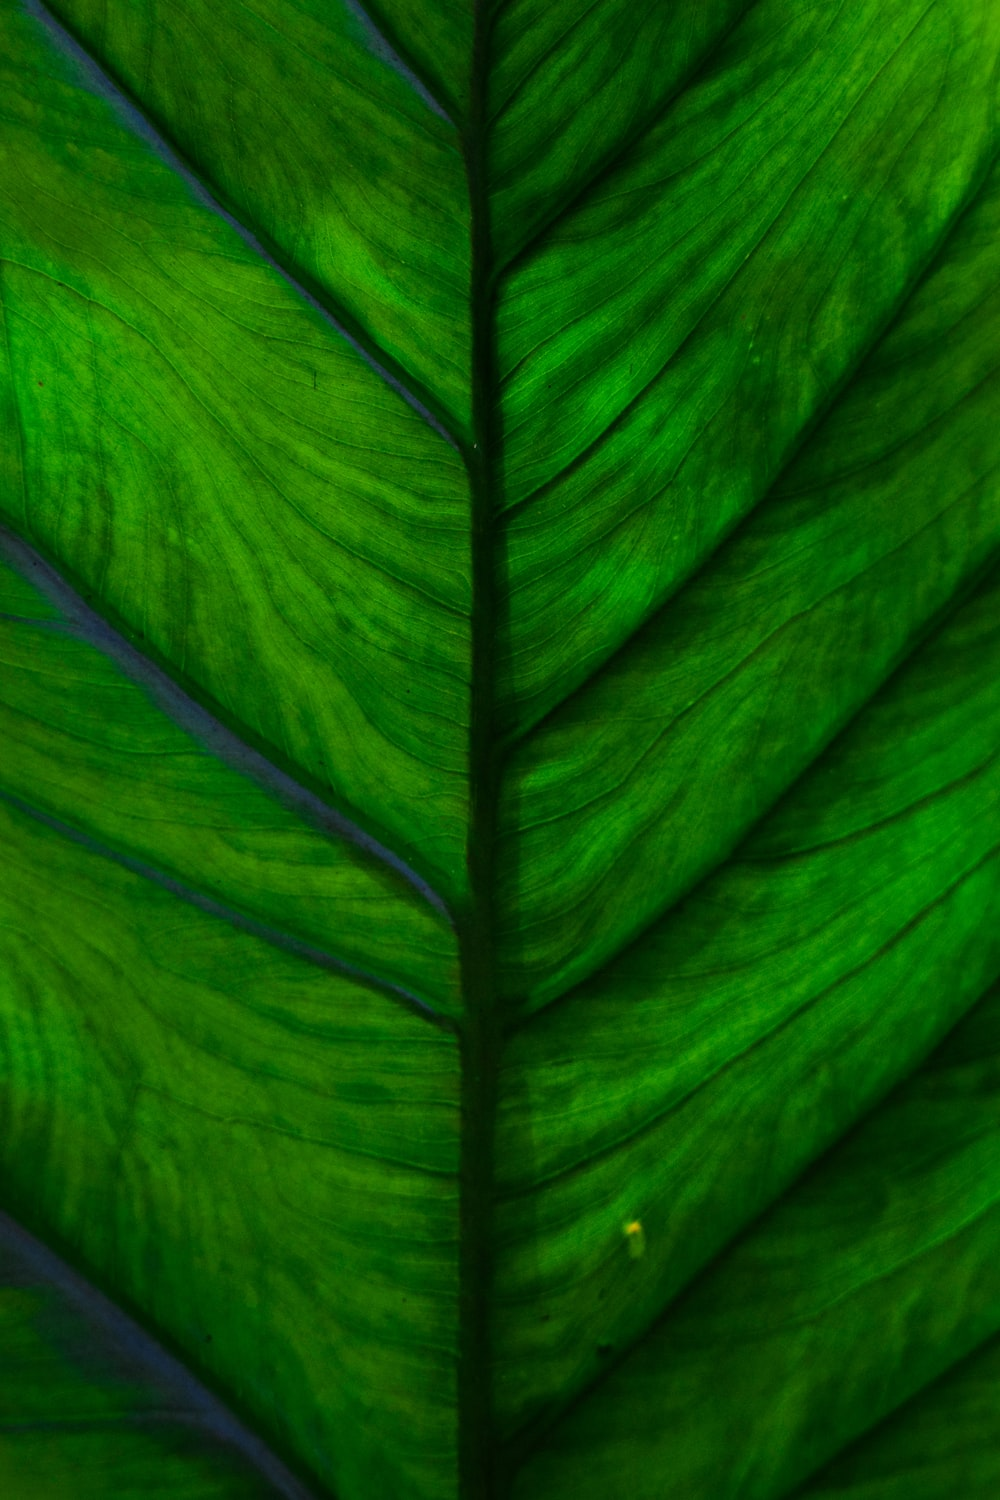 green leaf macro photography